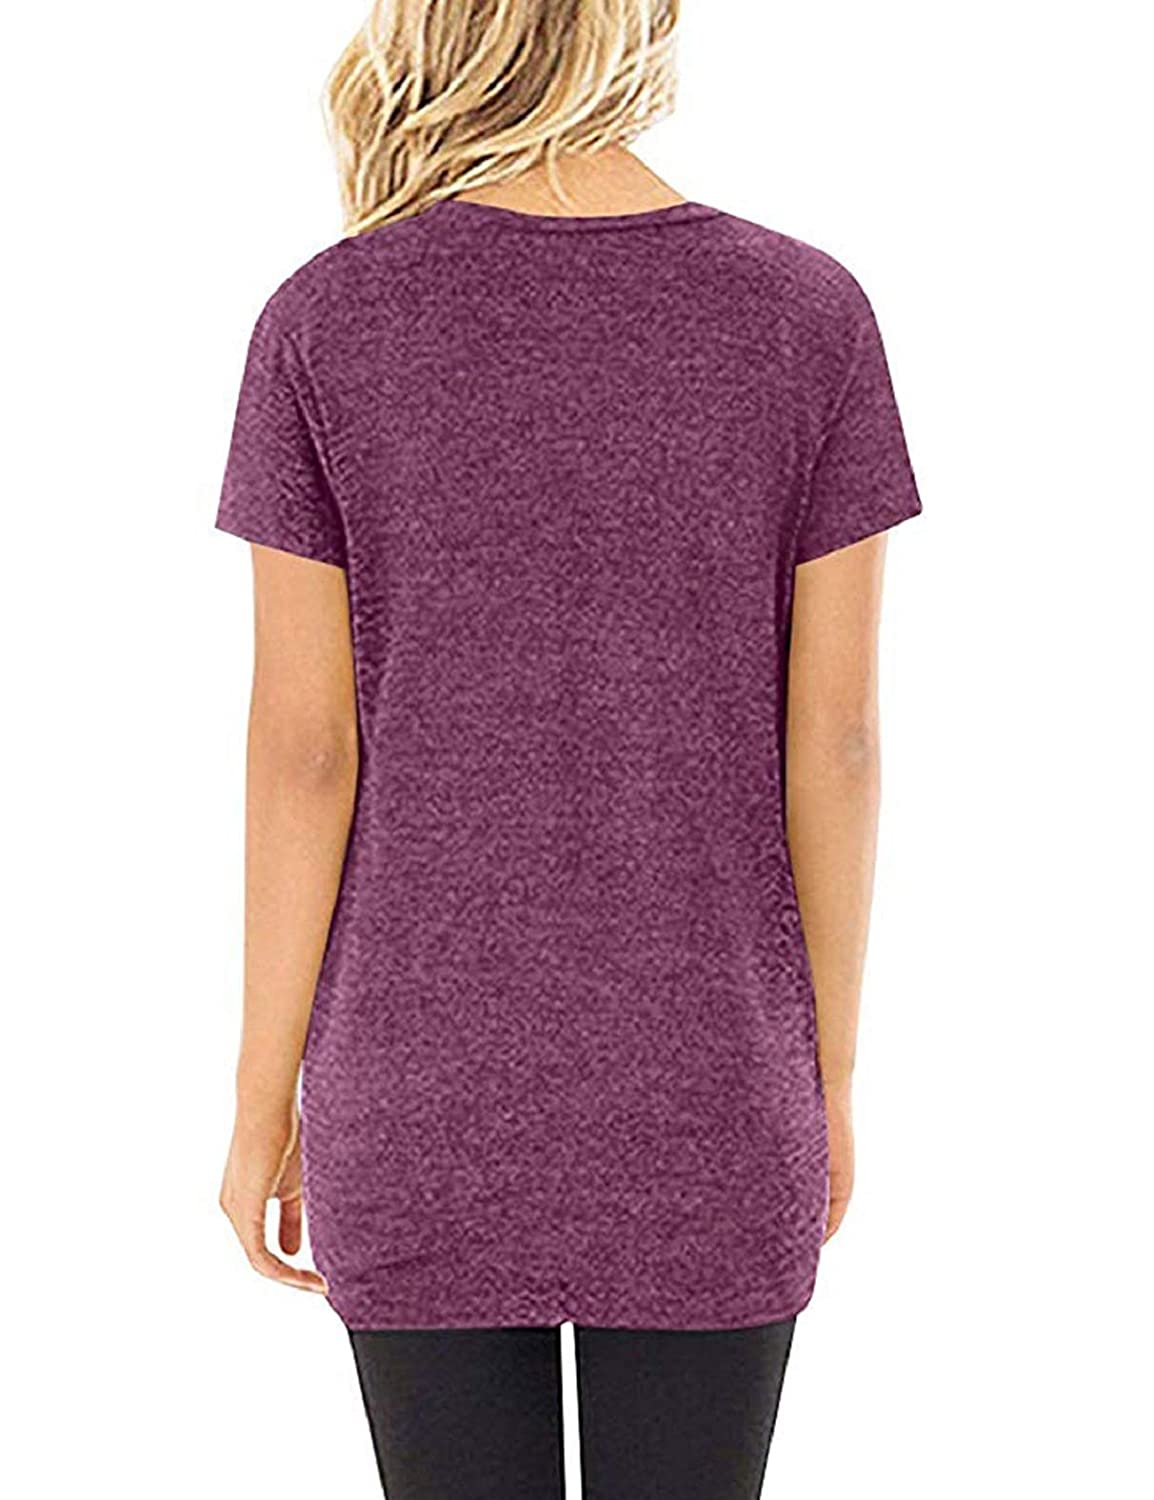 Womens Loose Casual Knot Twisted Tops Tunic Blouse Solid Color Short Sleeve T Shirts